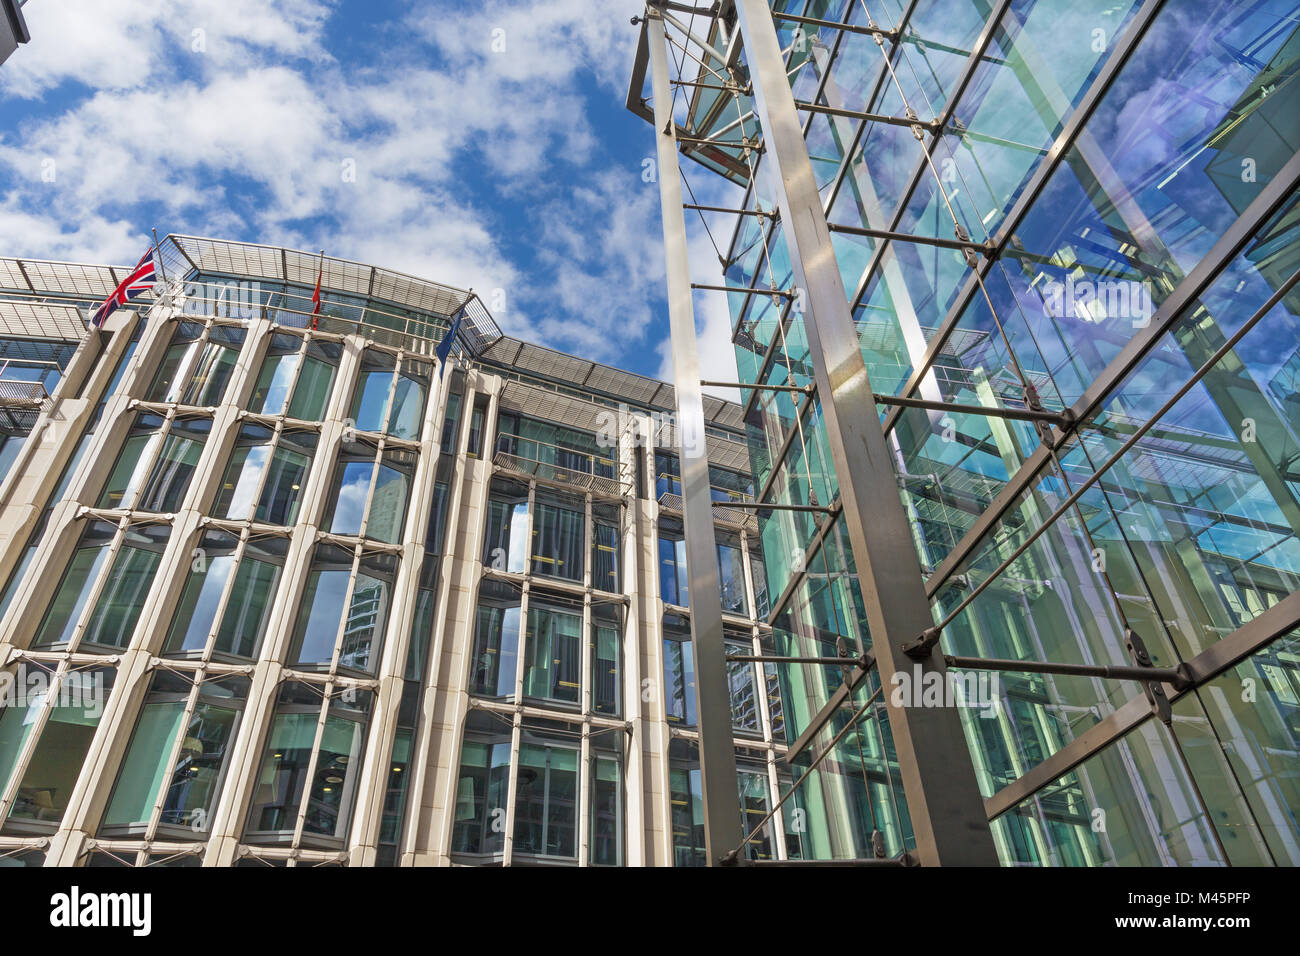 LONDON, GREAT BRITAIN - SEPTEMBER 14, 2017: The modern govenment building - Stock Image